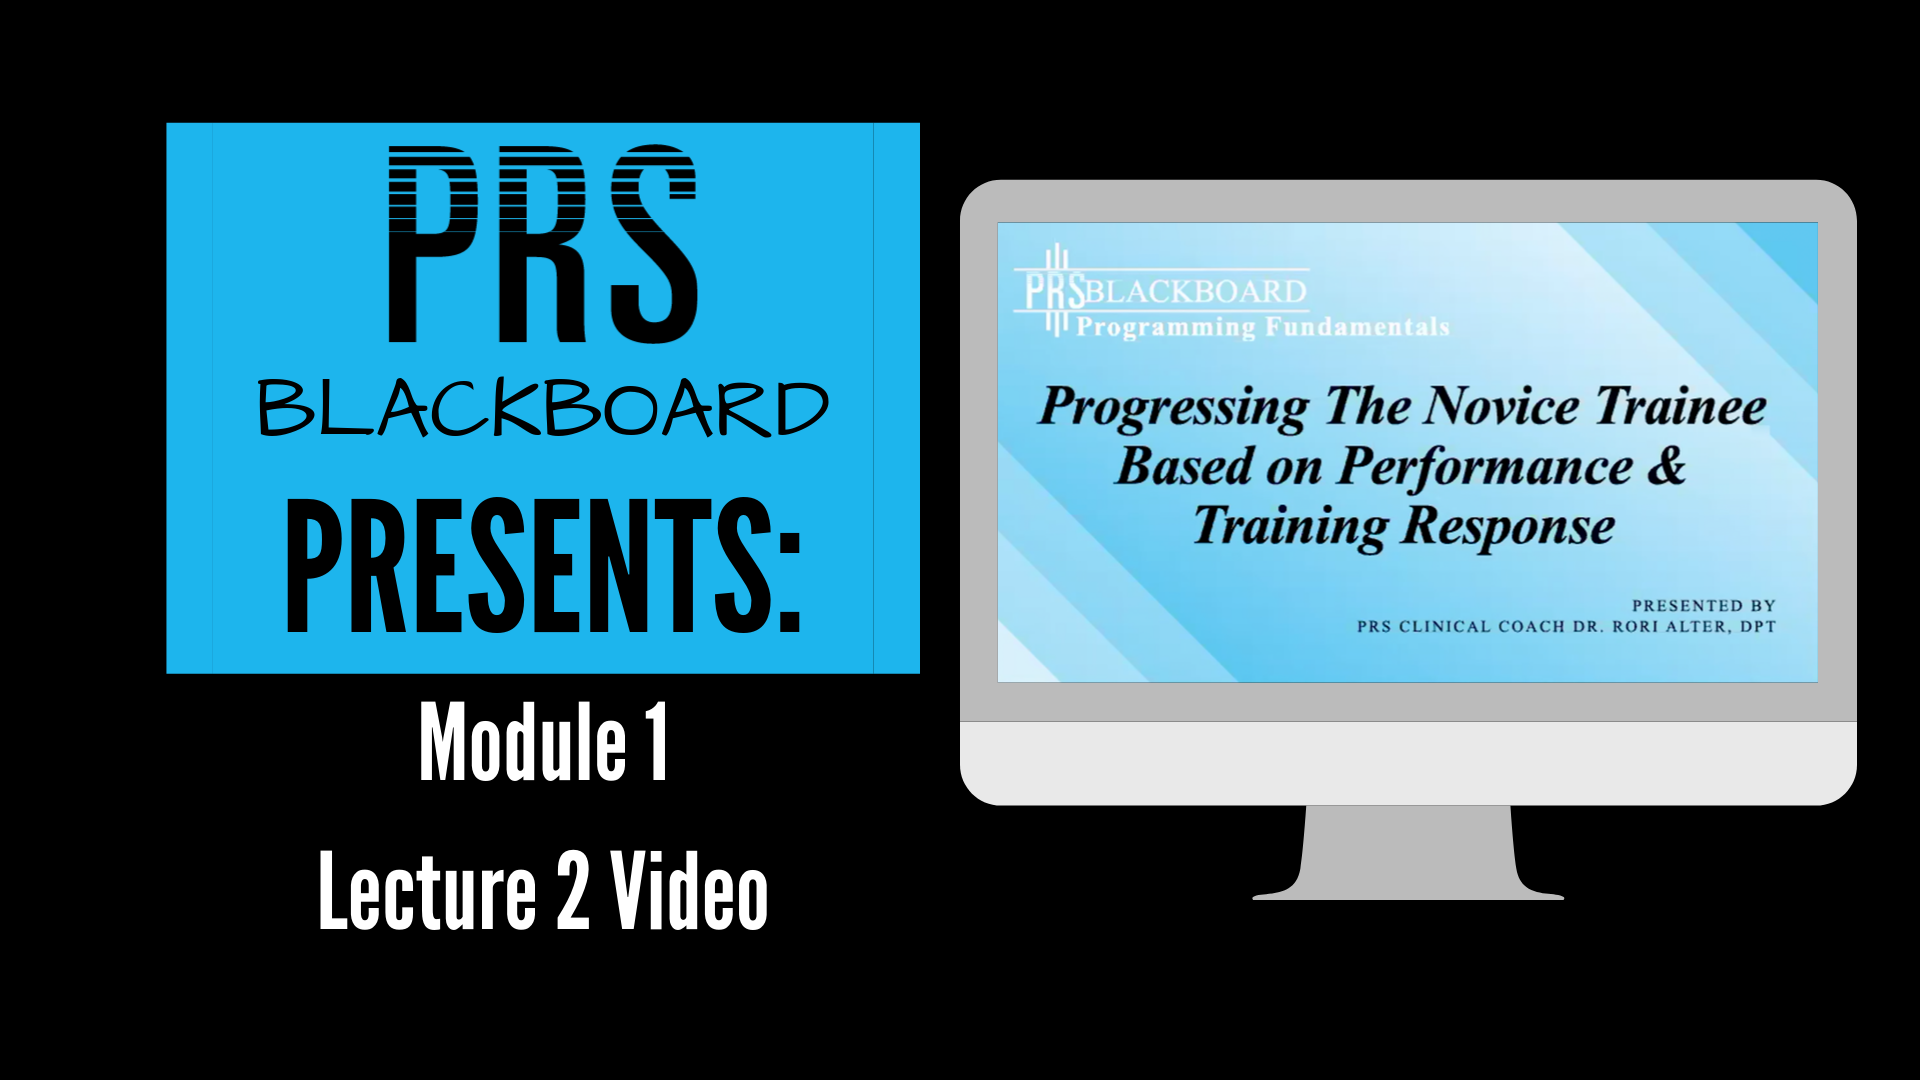 Blackboard lecture 2 Thumbnail.png